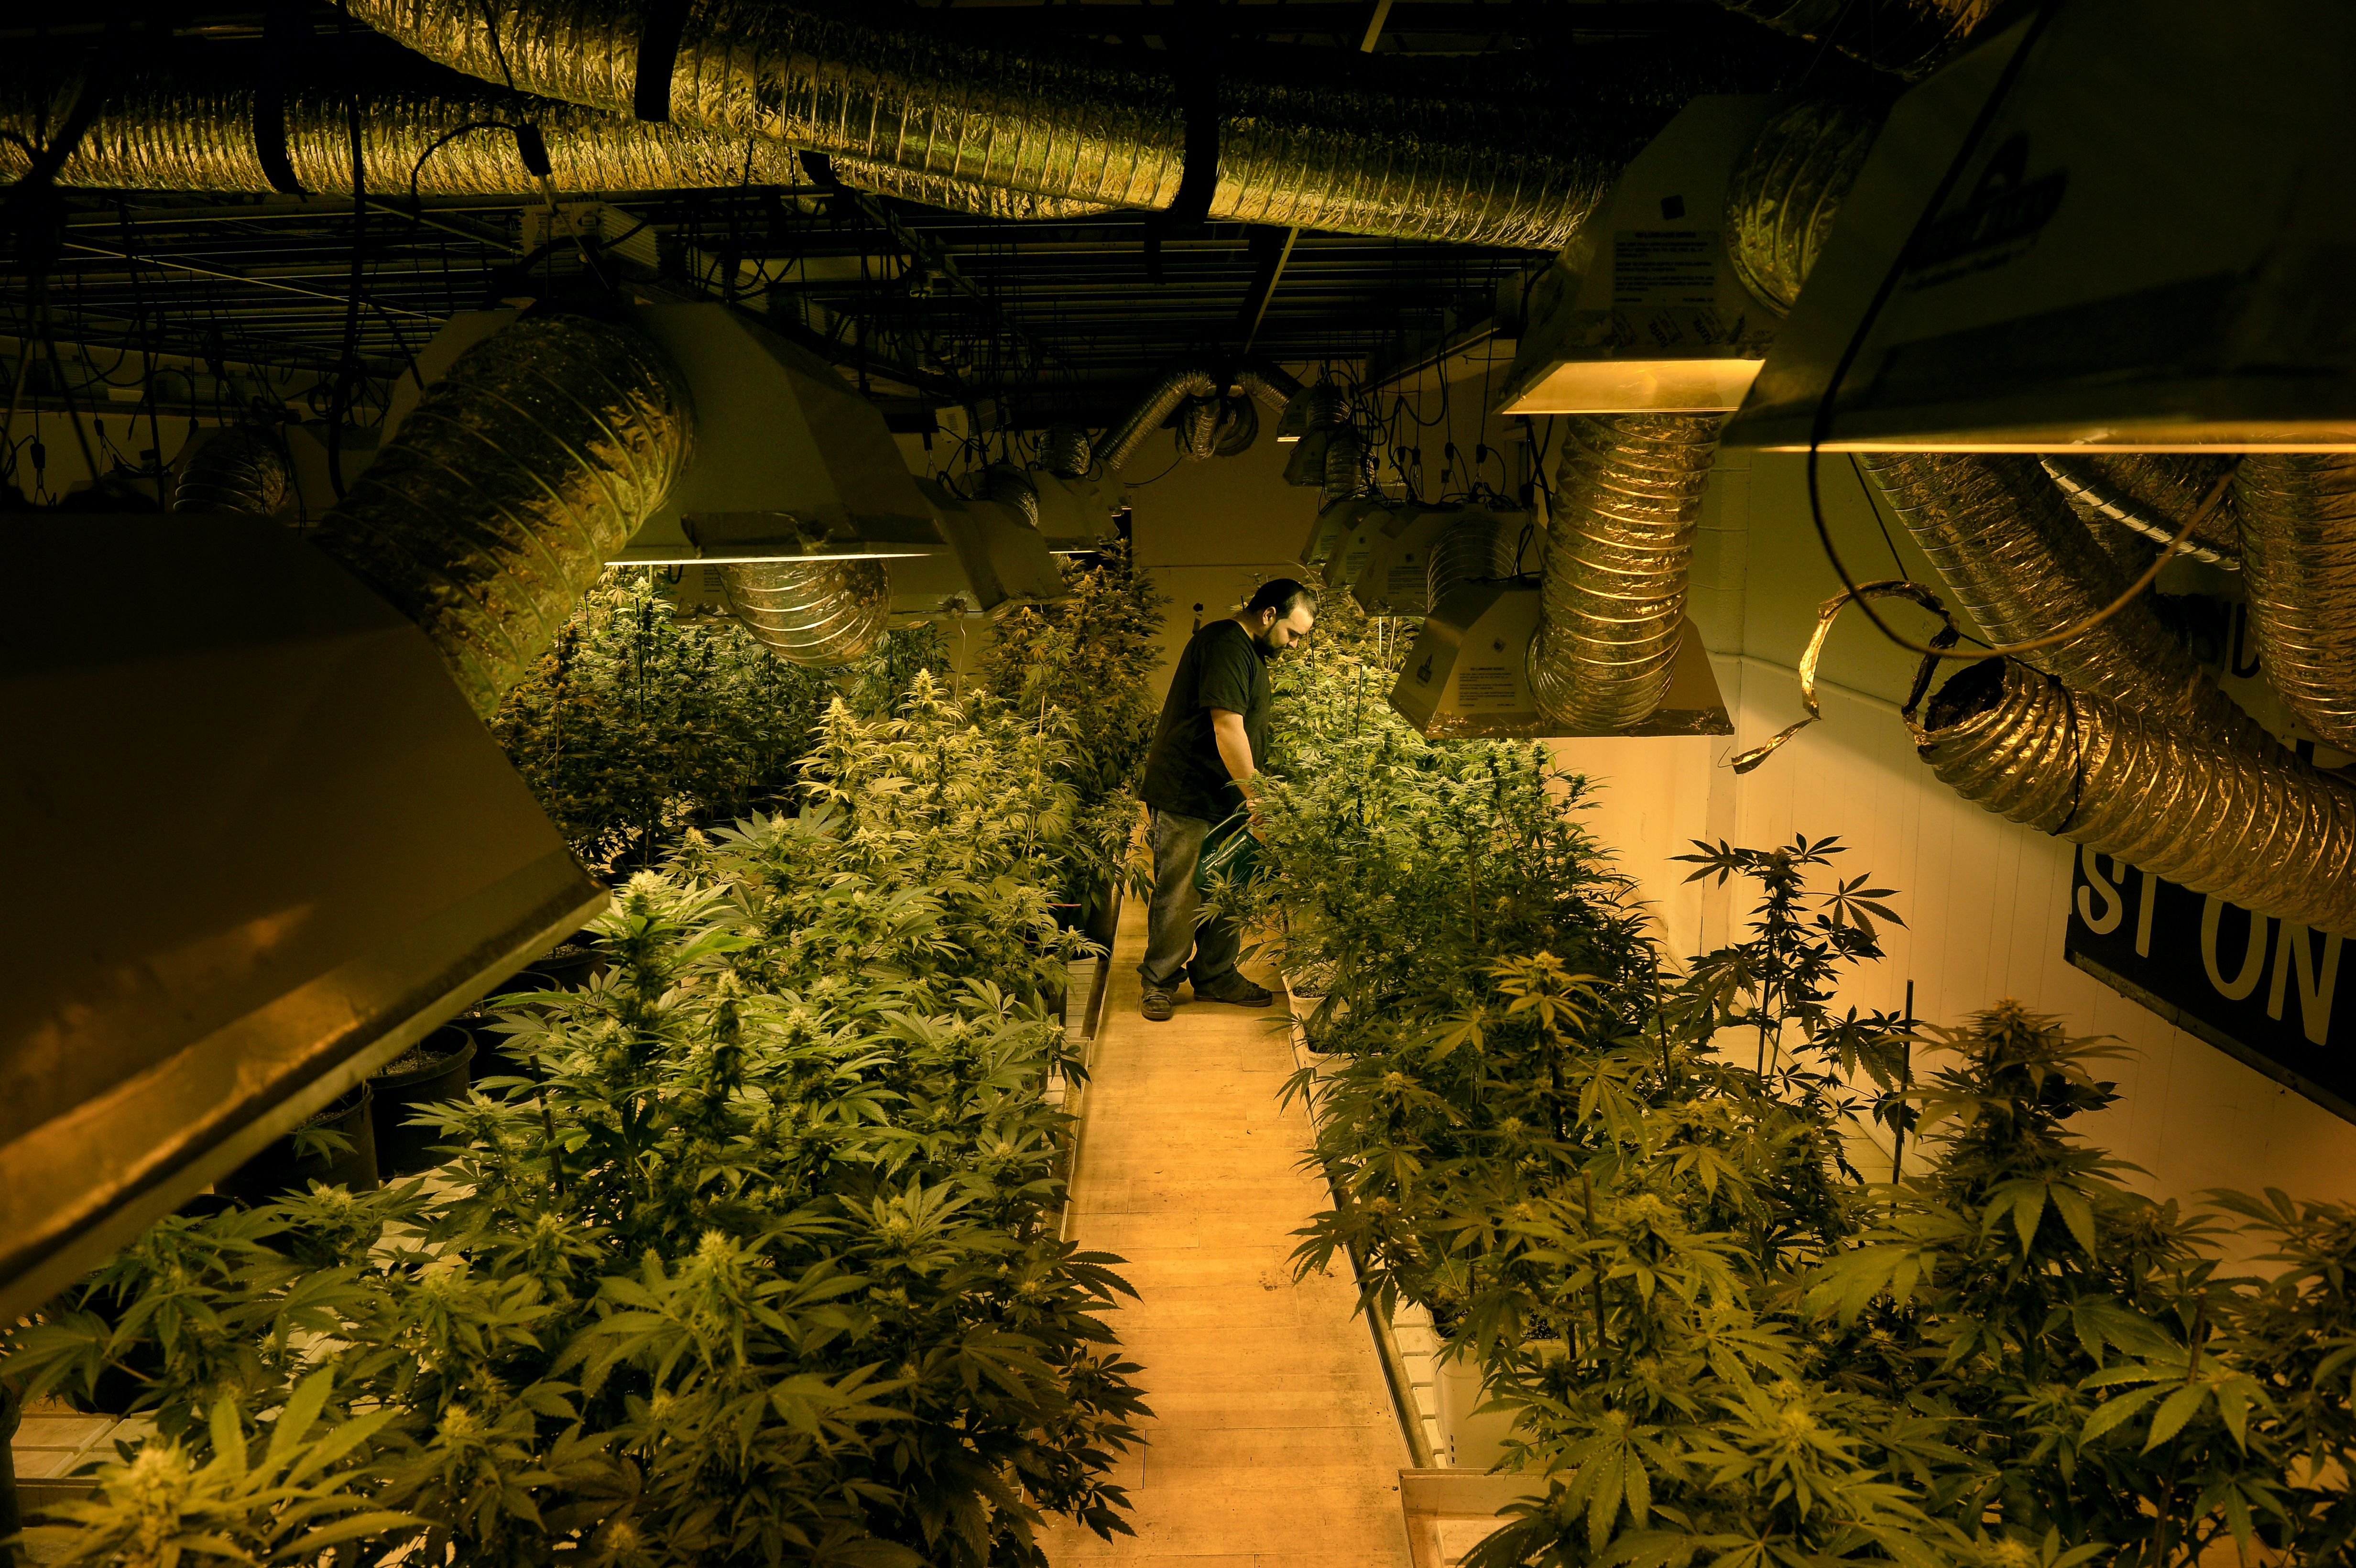 Grower Joe Rey feeds marijuana plants a combination of nutrients and molasses in a flower room at 3-D Denver Discreet Dispensary in Denver on Dec. 04, 2013.